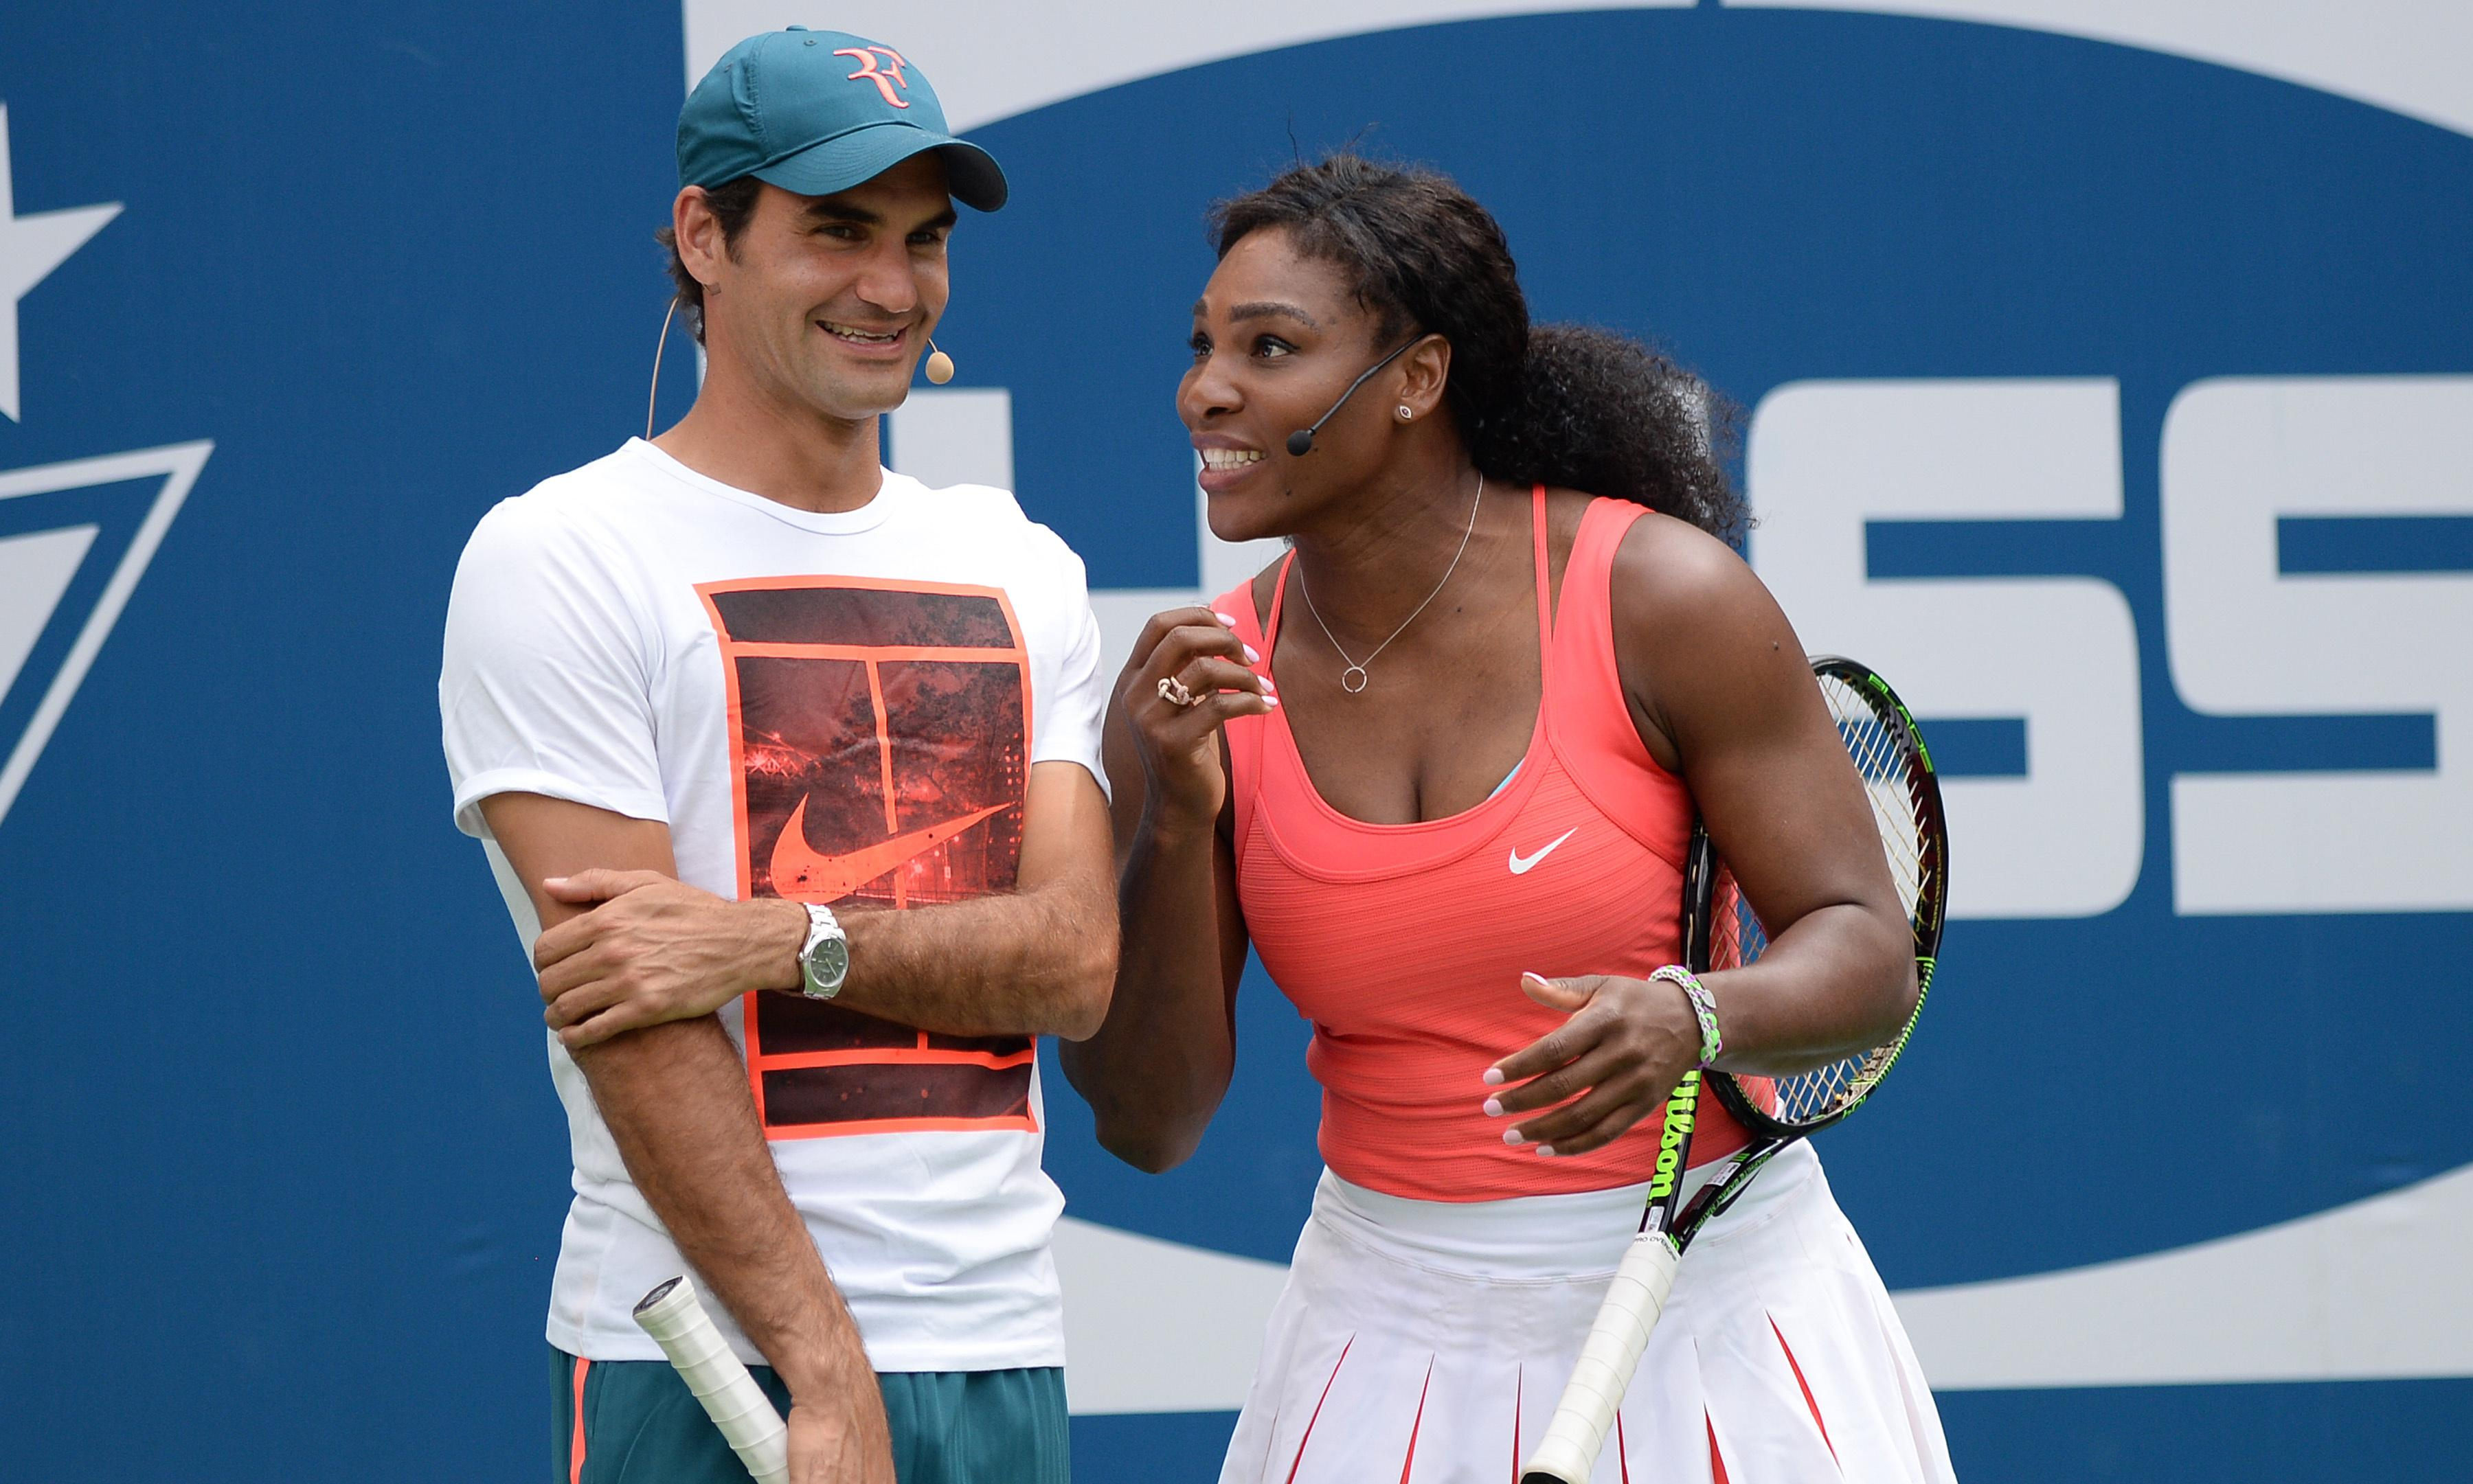 Serena Williams and Roger Federer to play each other for first time